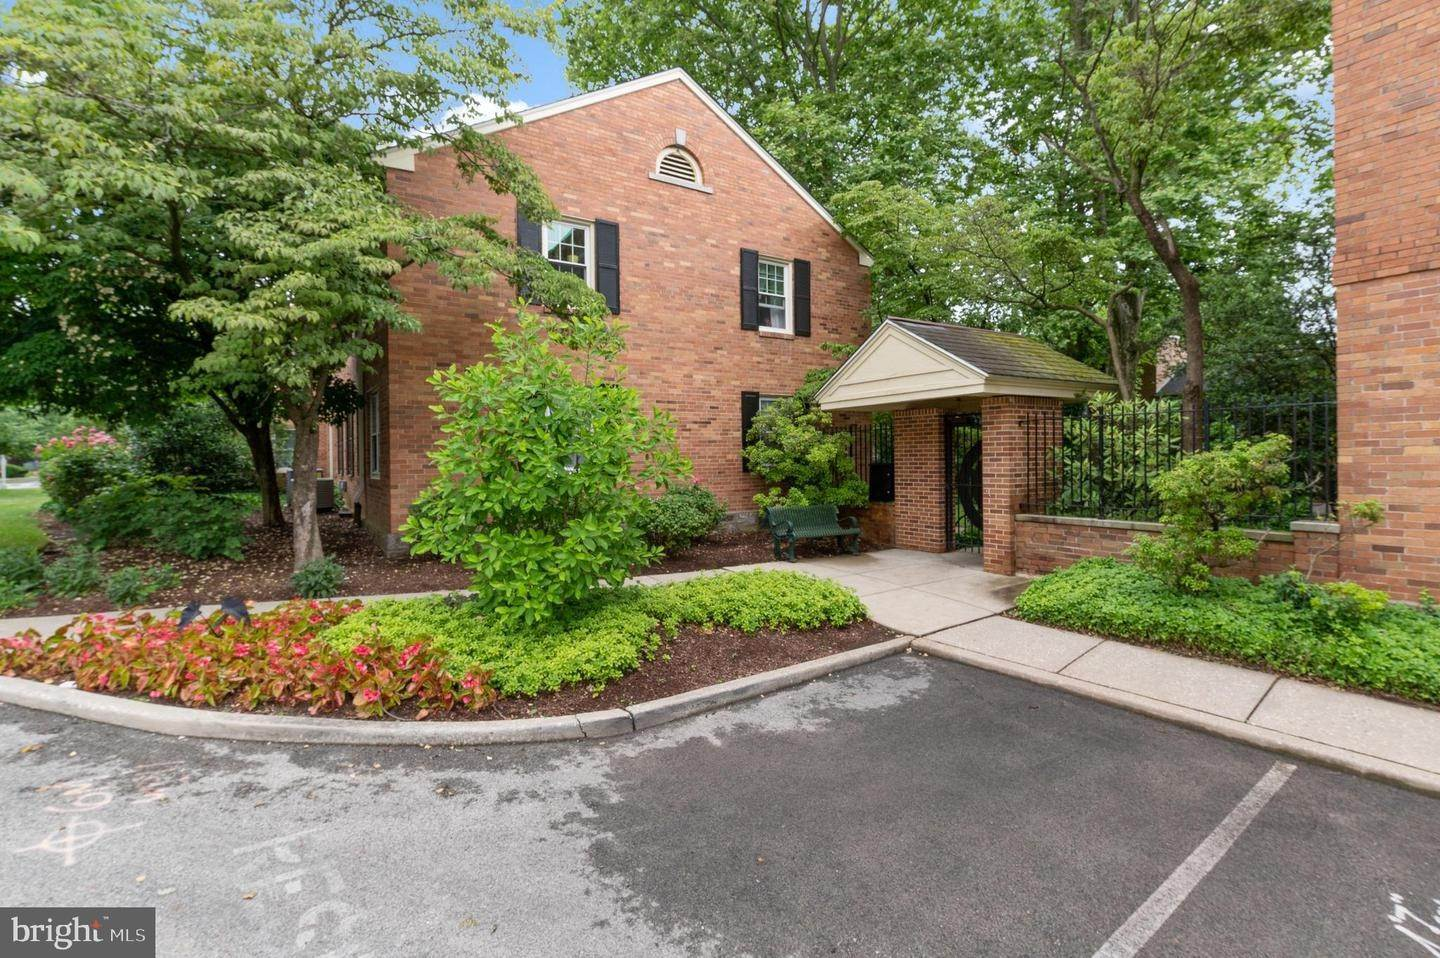 3. Condominiums for Sale at 42 CONSHOHOCKEN STATE RD #5F Bala Cynwyd, Pennsylvania 19004 United States